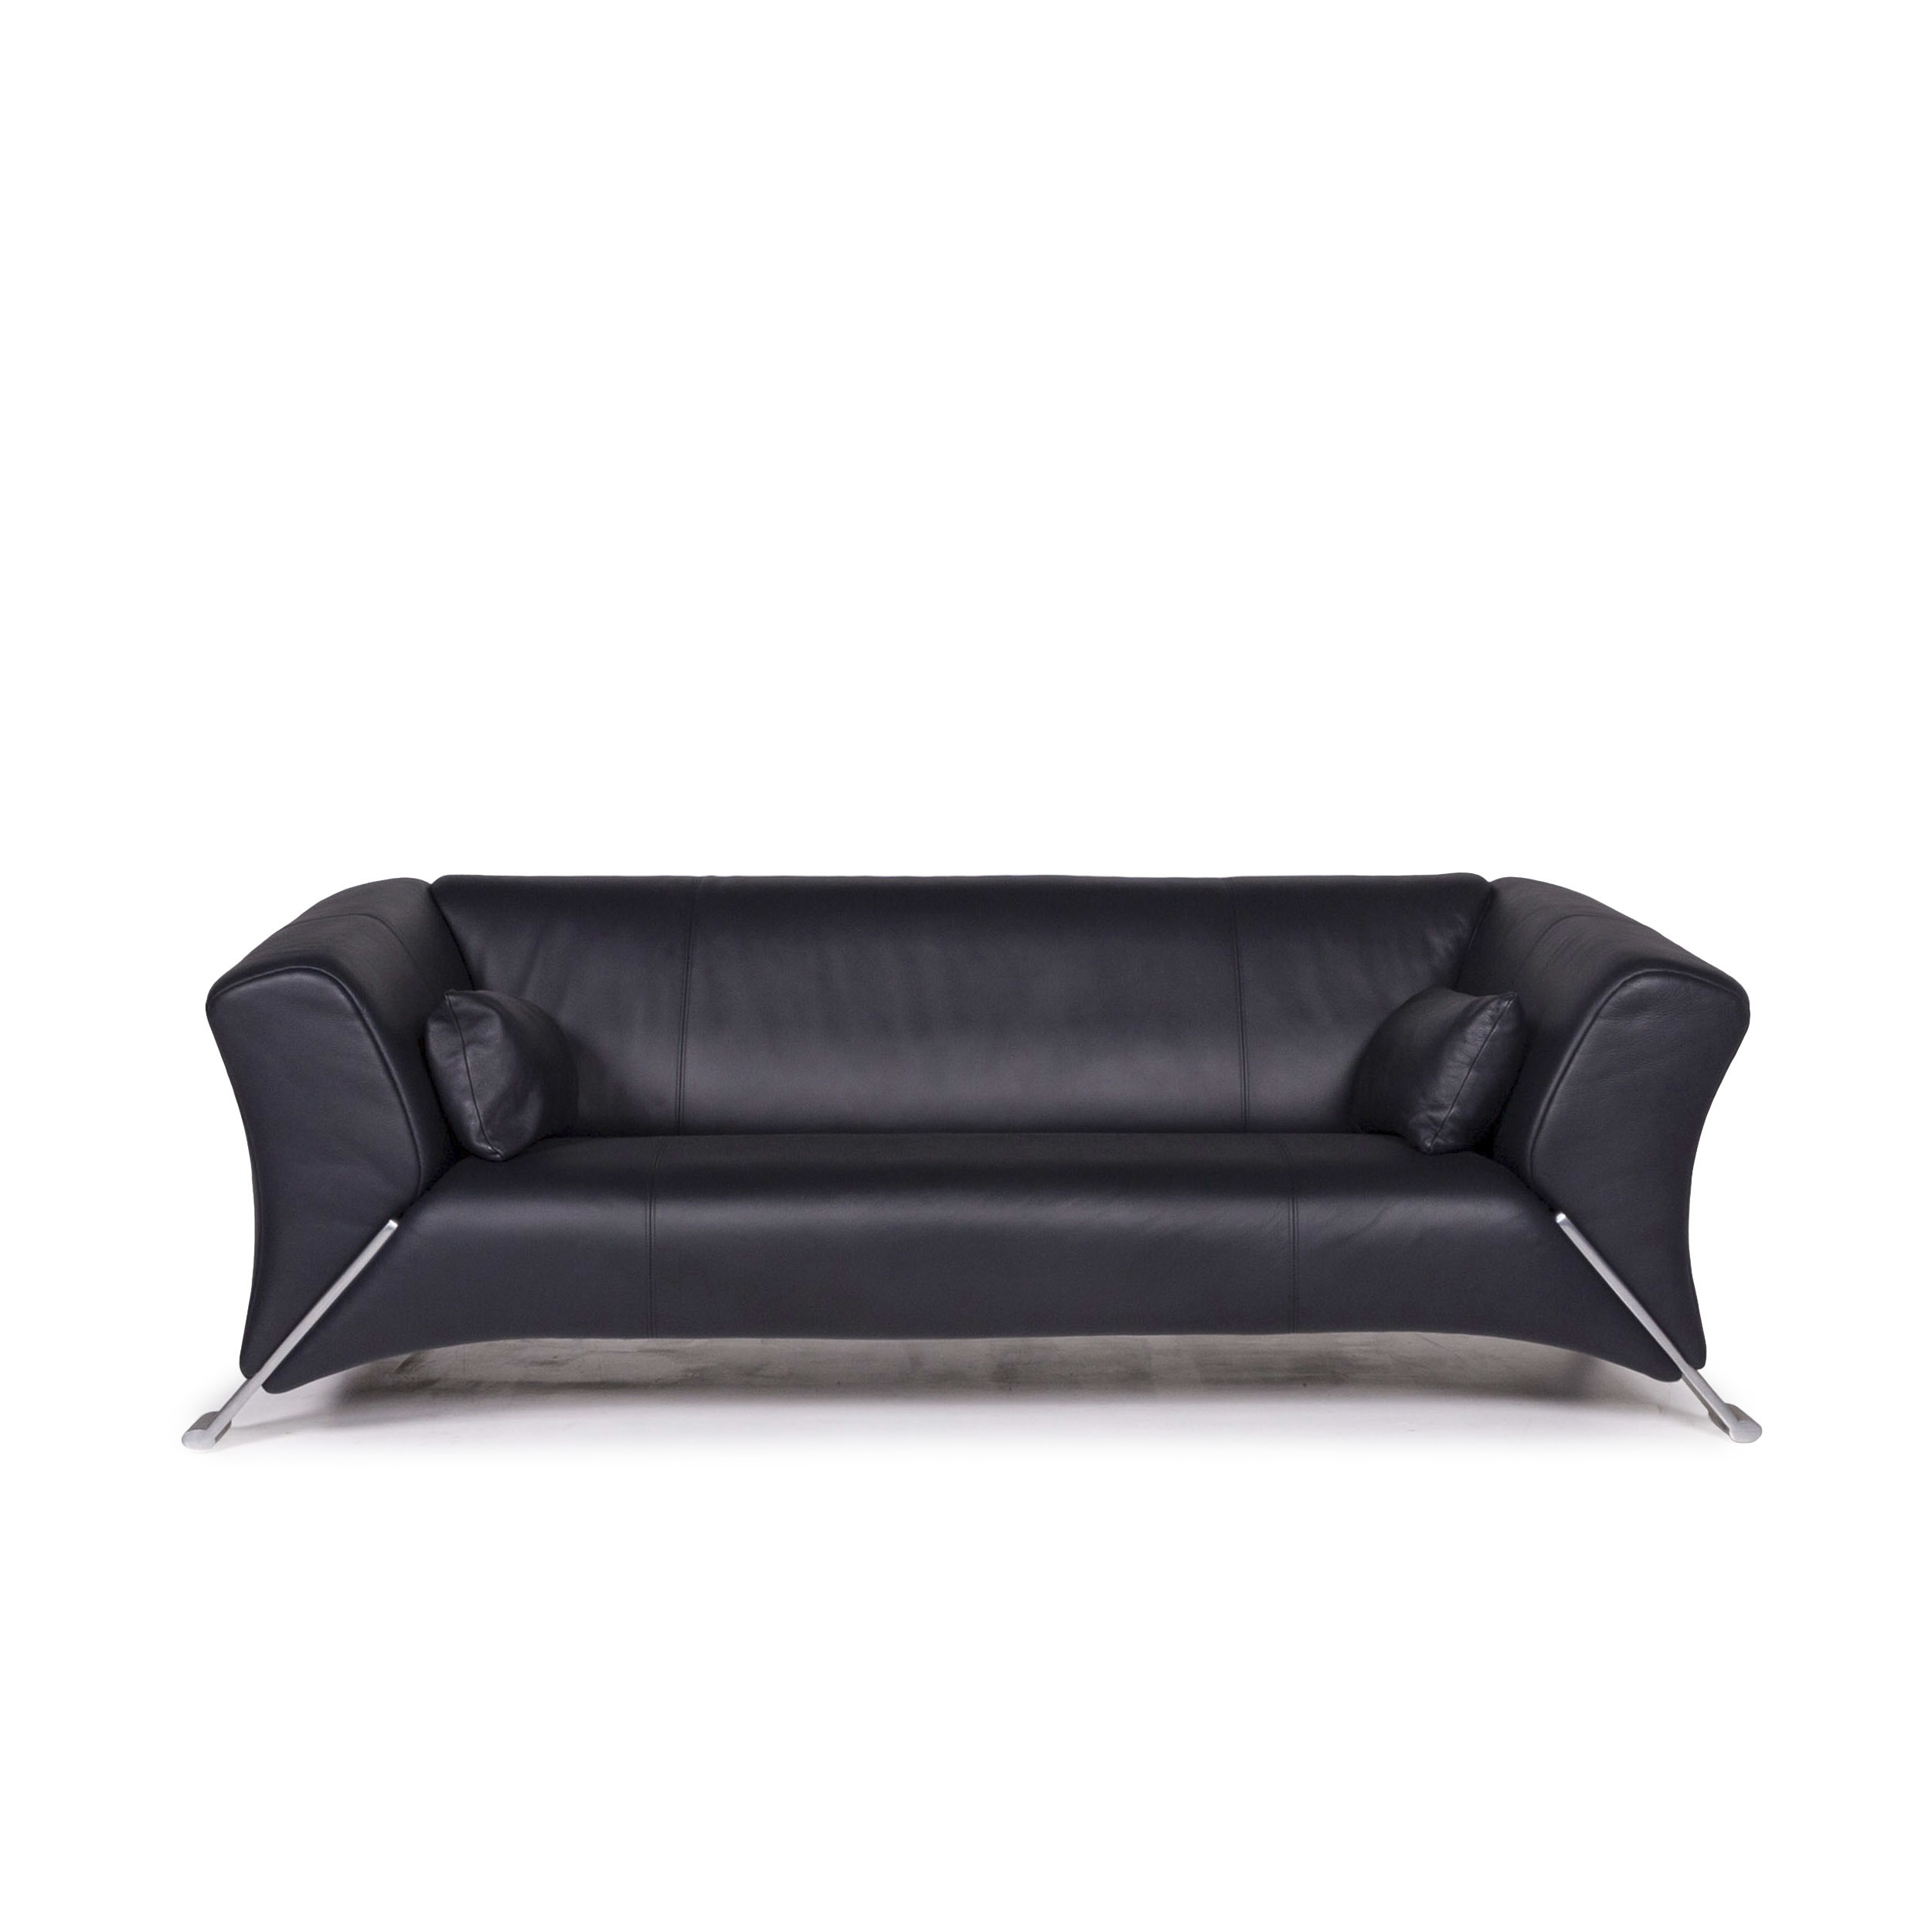 Rolf Benz 322 Leather Sofa Blue Dark Blue Three Seater Couch #12078